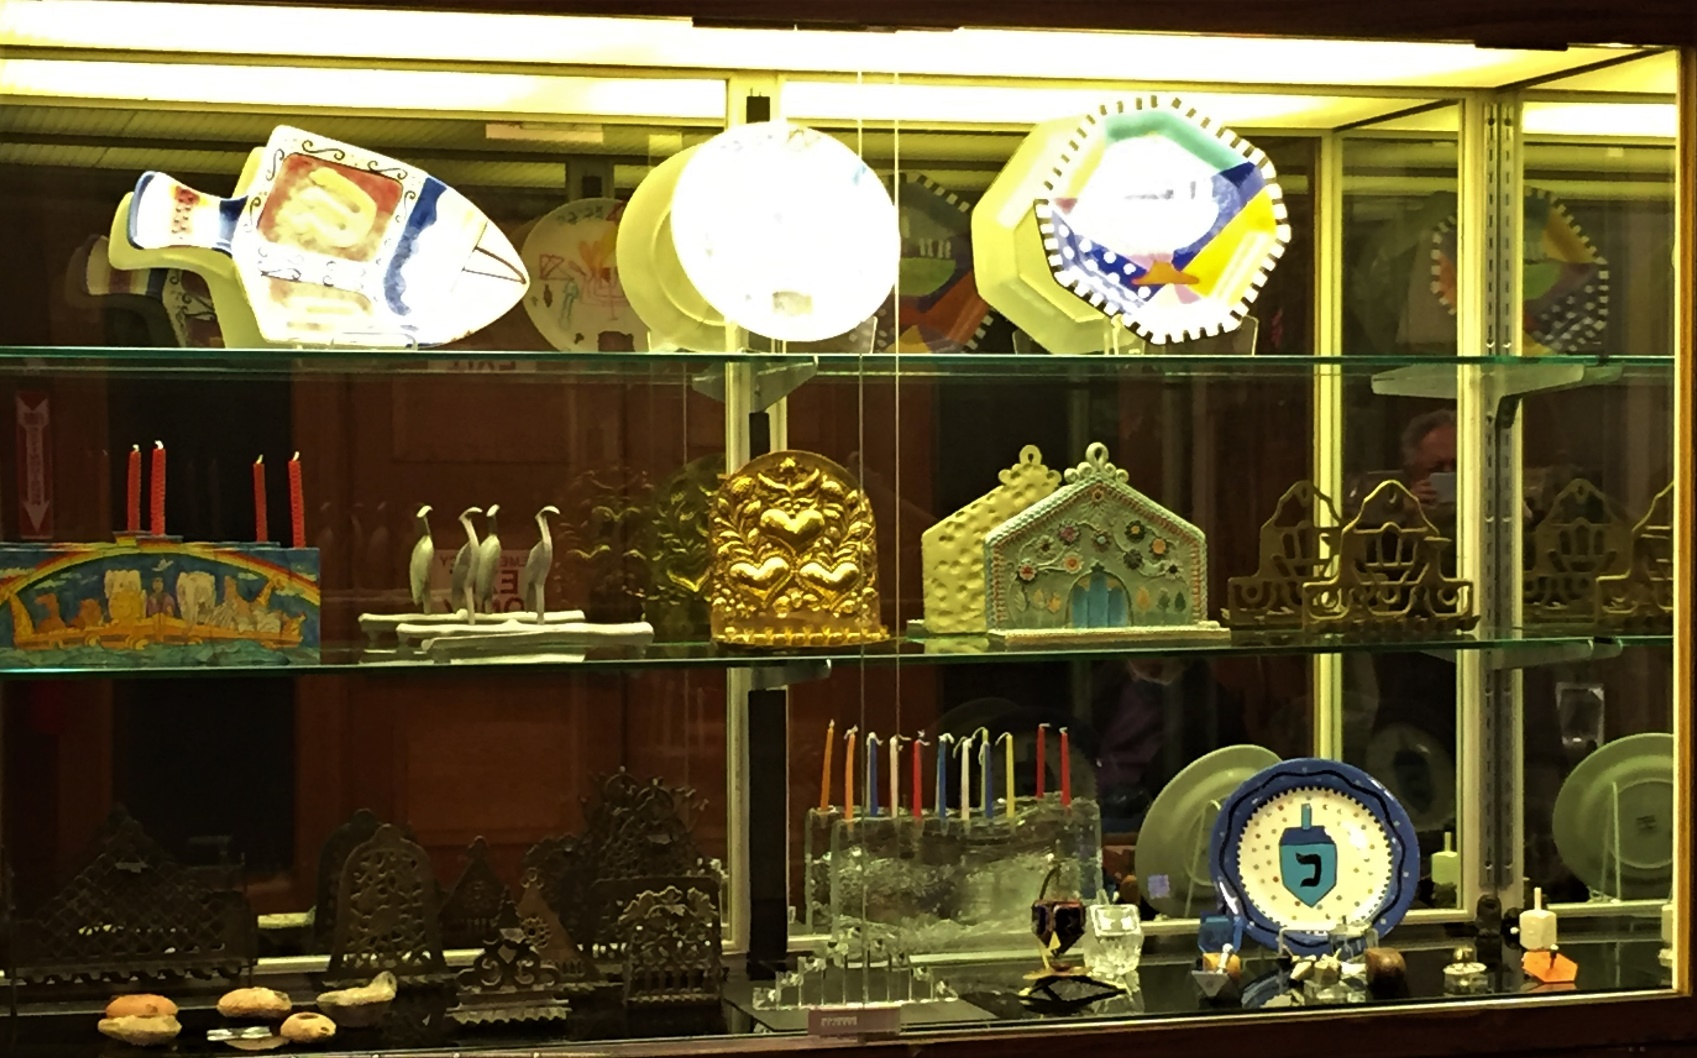 It's Almost Time for Hanukkah!